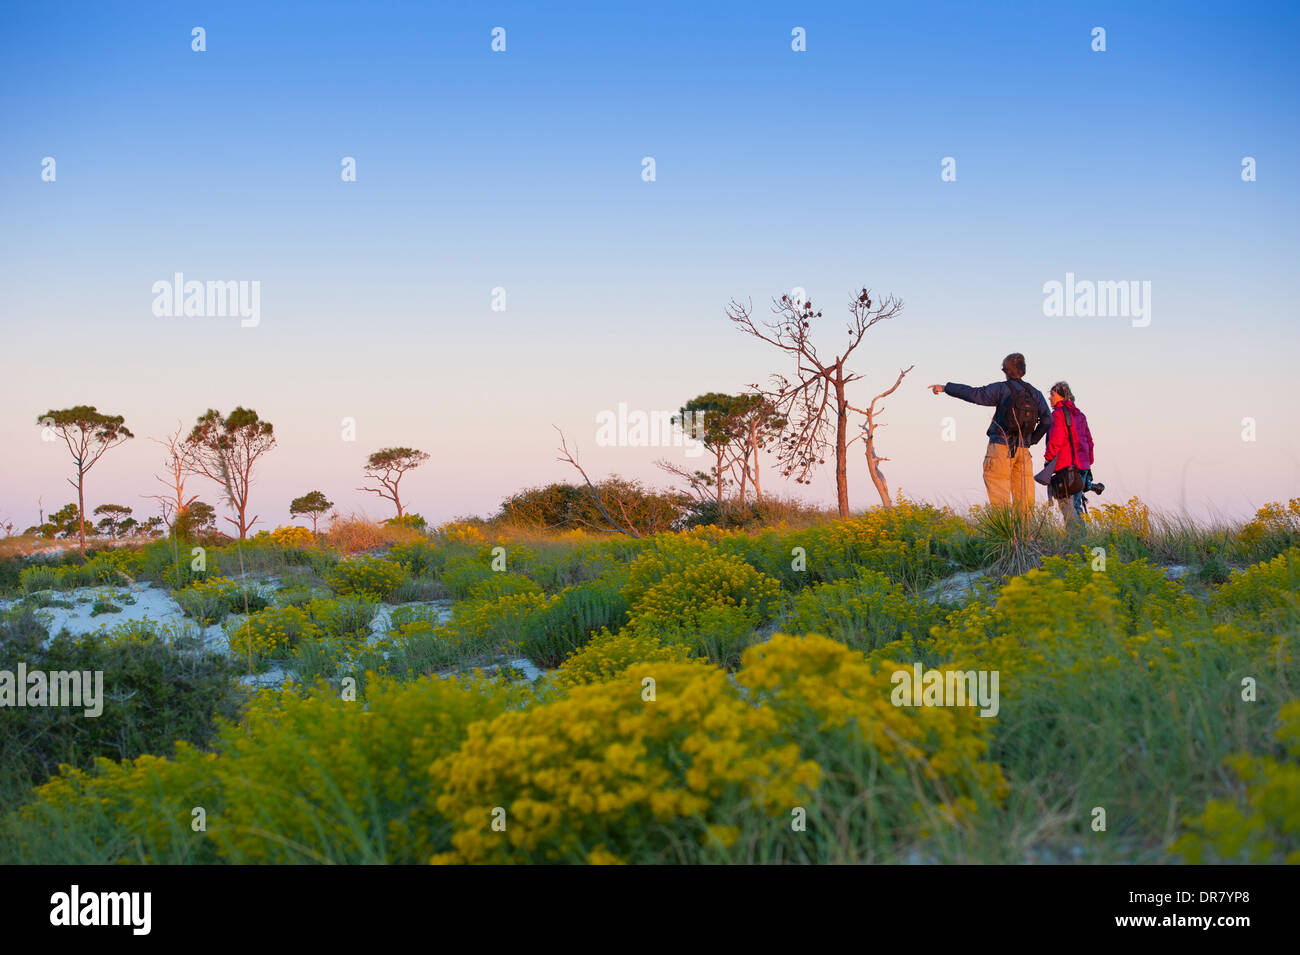 USA Mississippi MS Horn Island - Gulf Islands National Seashore - Barrier island in Gulf of Mexico near Biloxi - couple nature - Stock Image